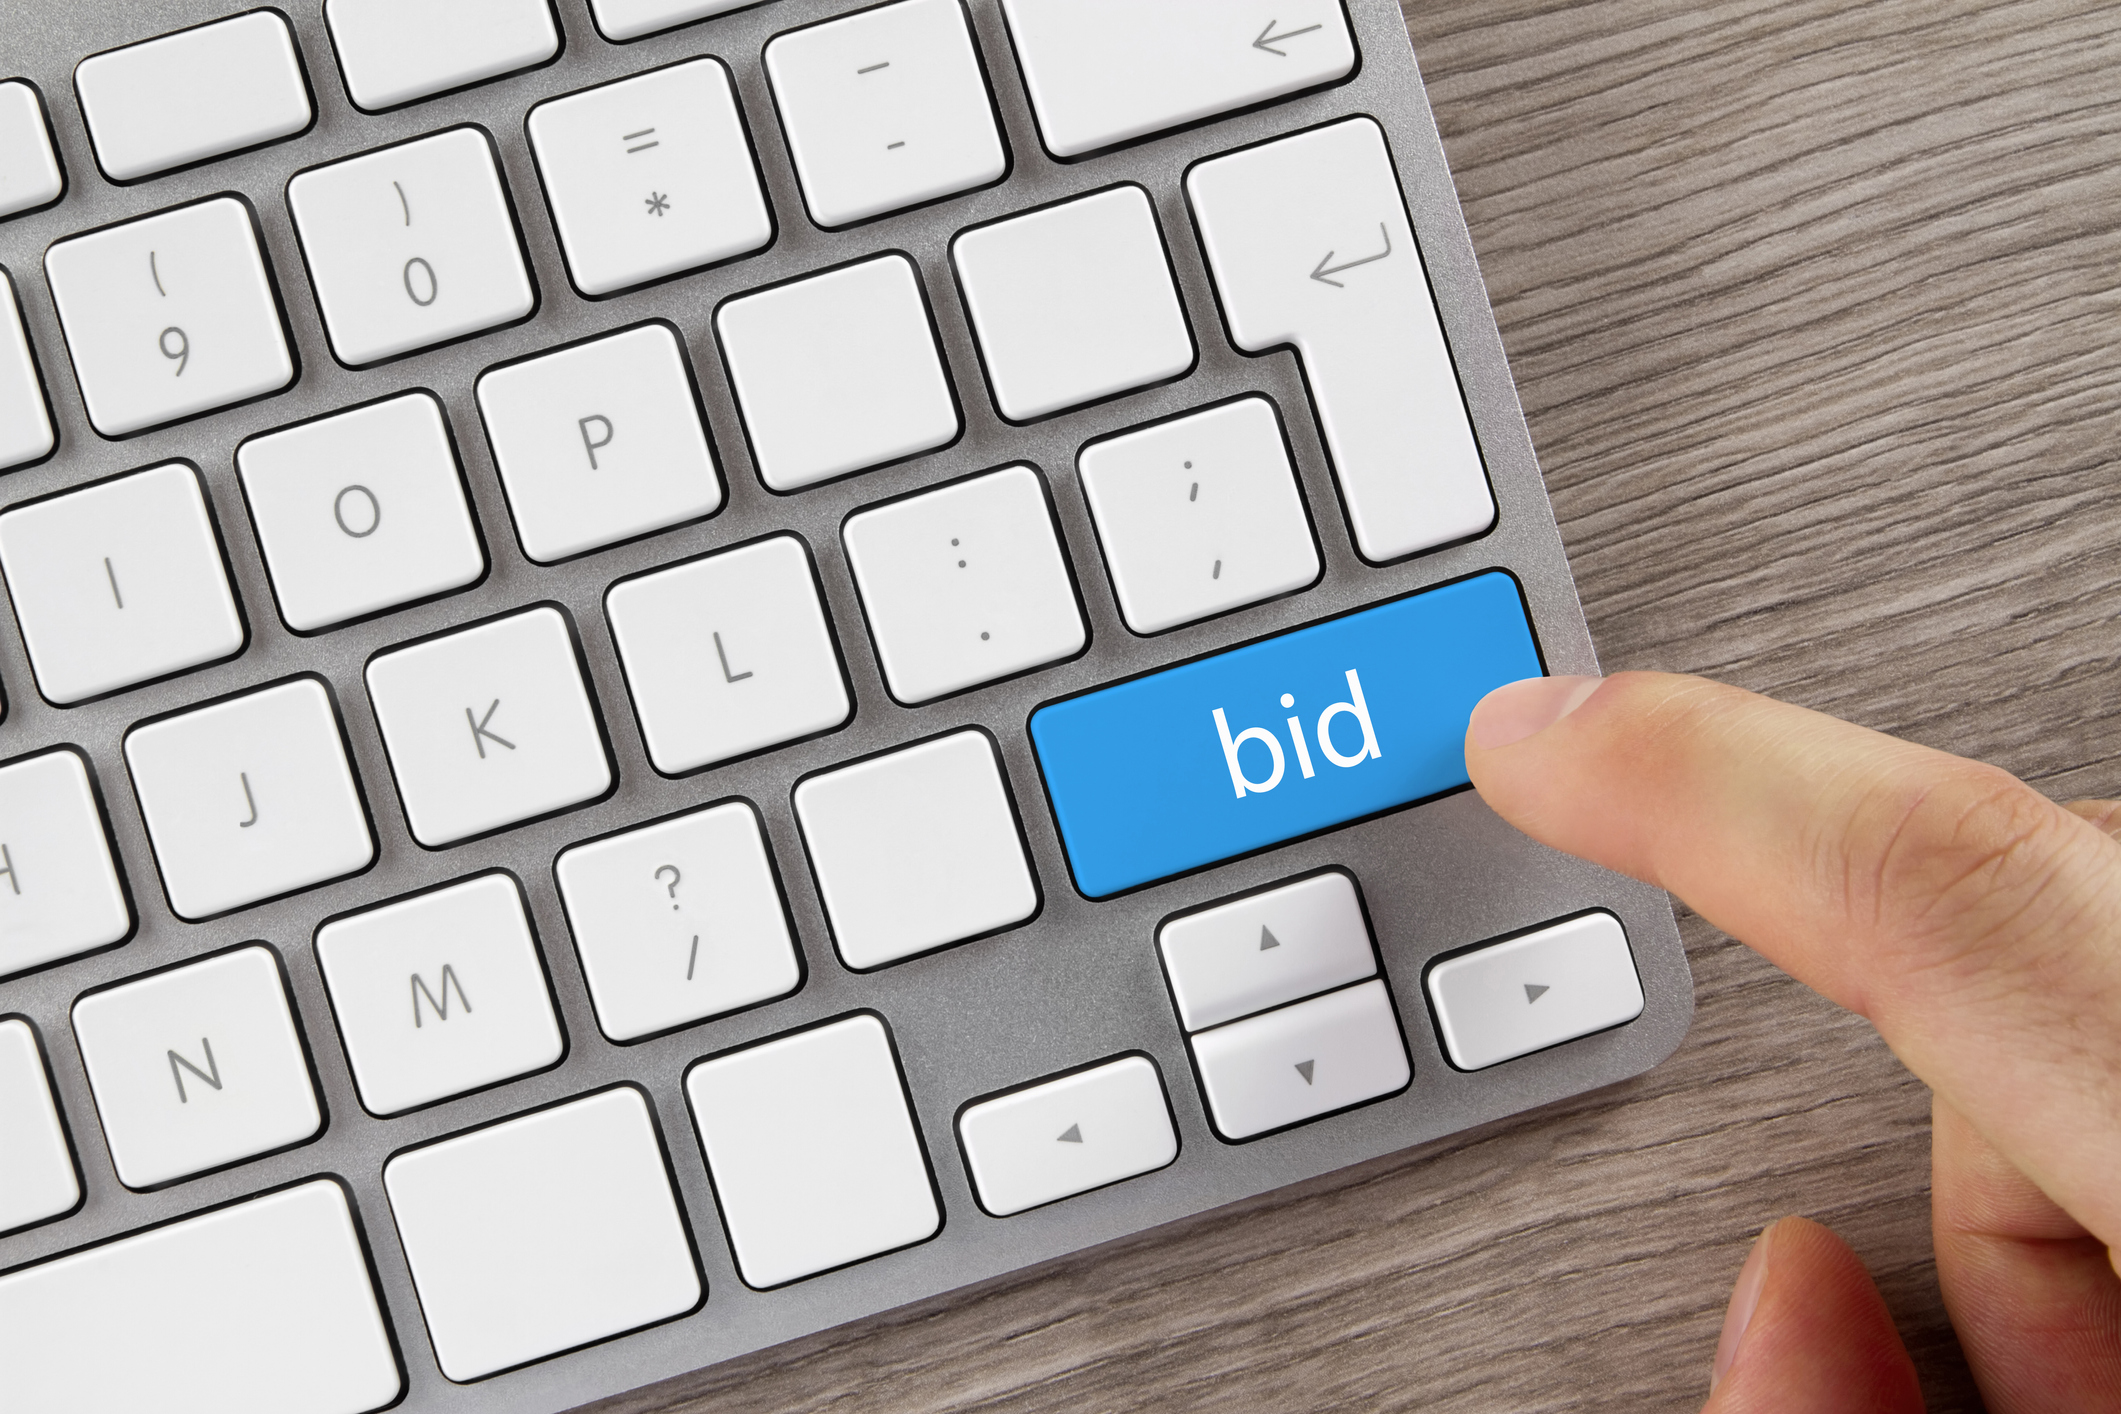 bid button on computer keyboard